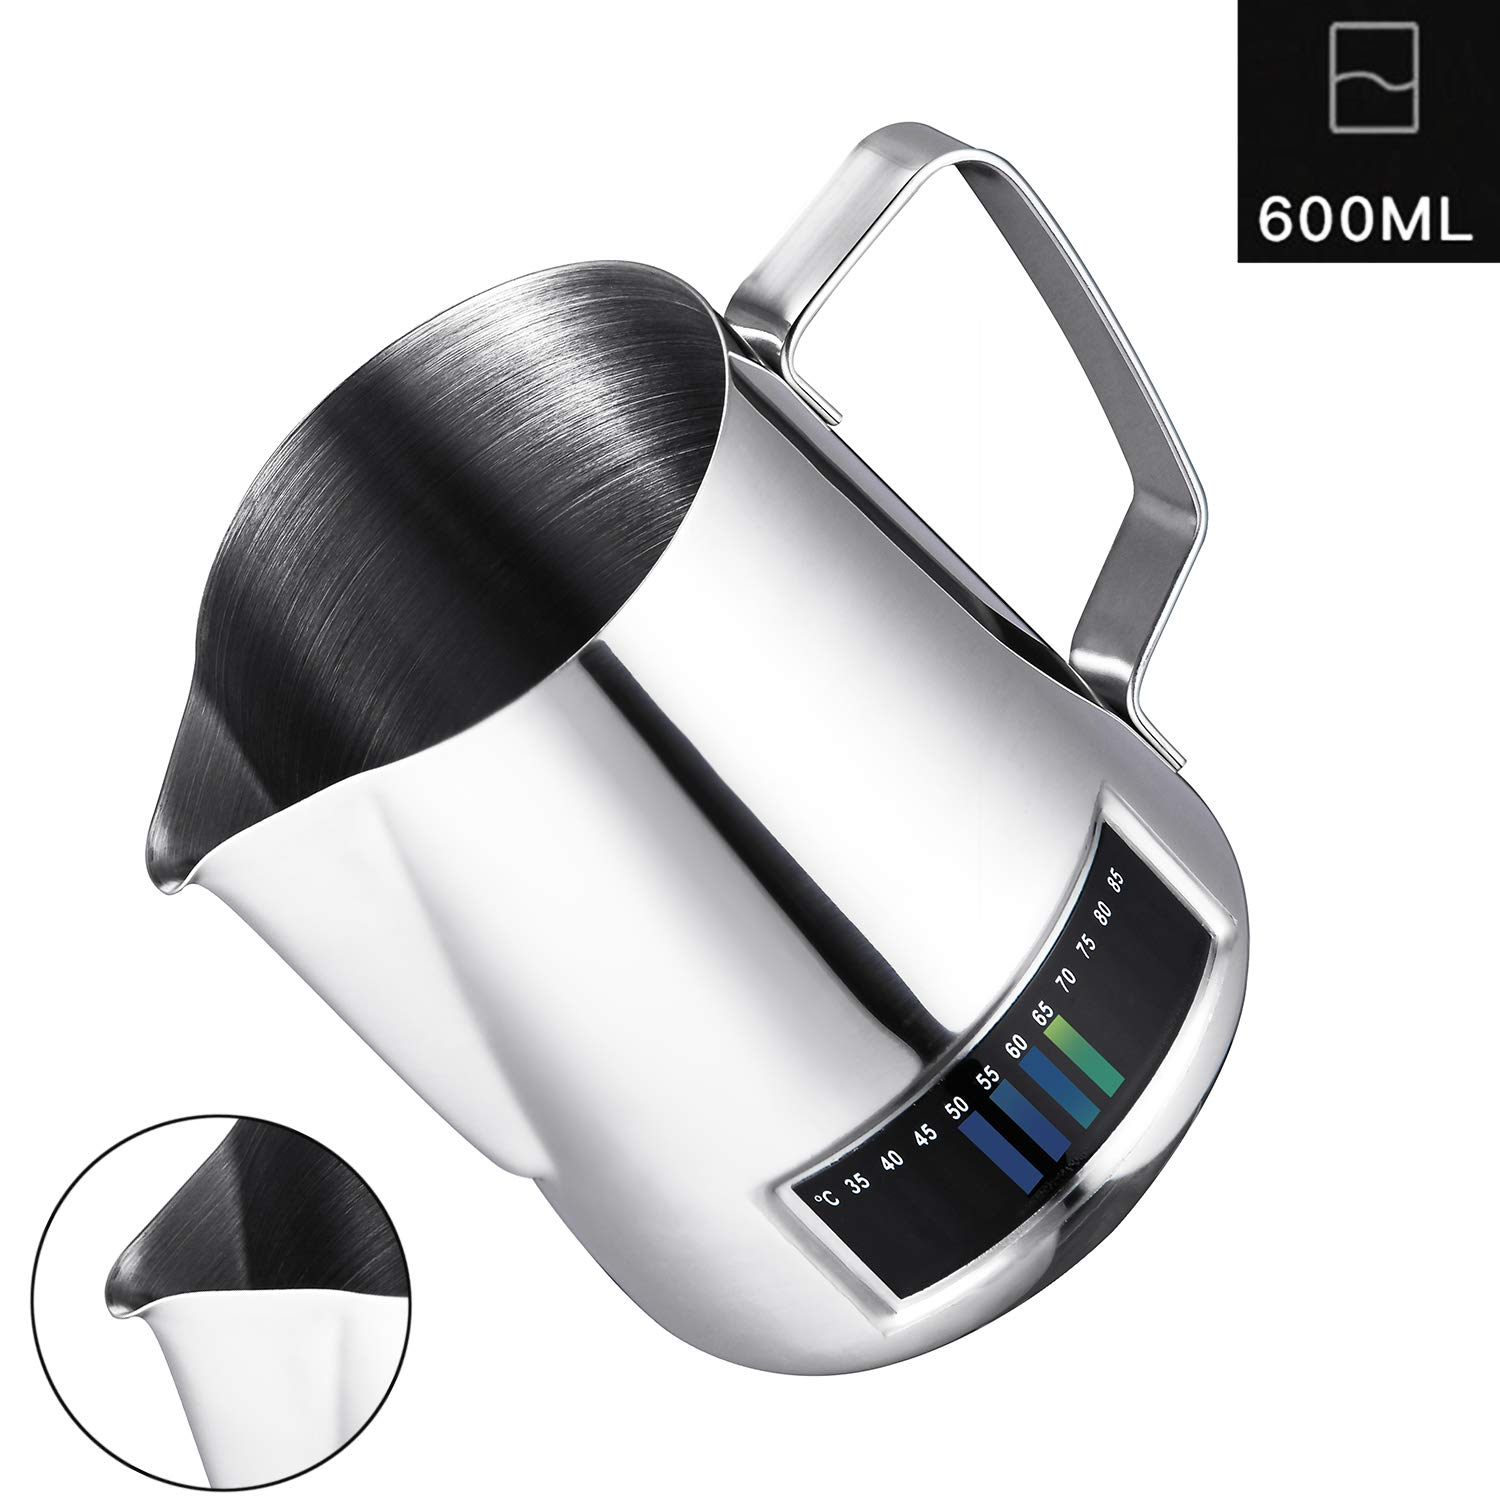 Milk Frothing Pitcher,Coffee4u Stainless Steel Creamer Frothing Pitcher With Integrated Thermometer 20 oz (600 ml), Chrome